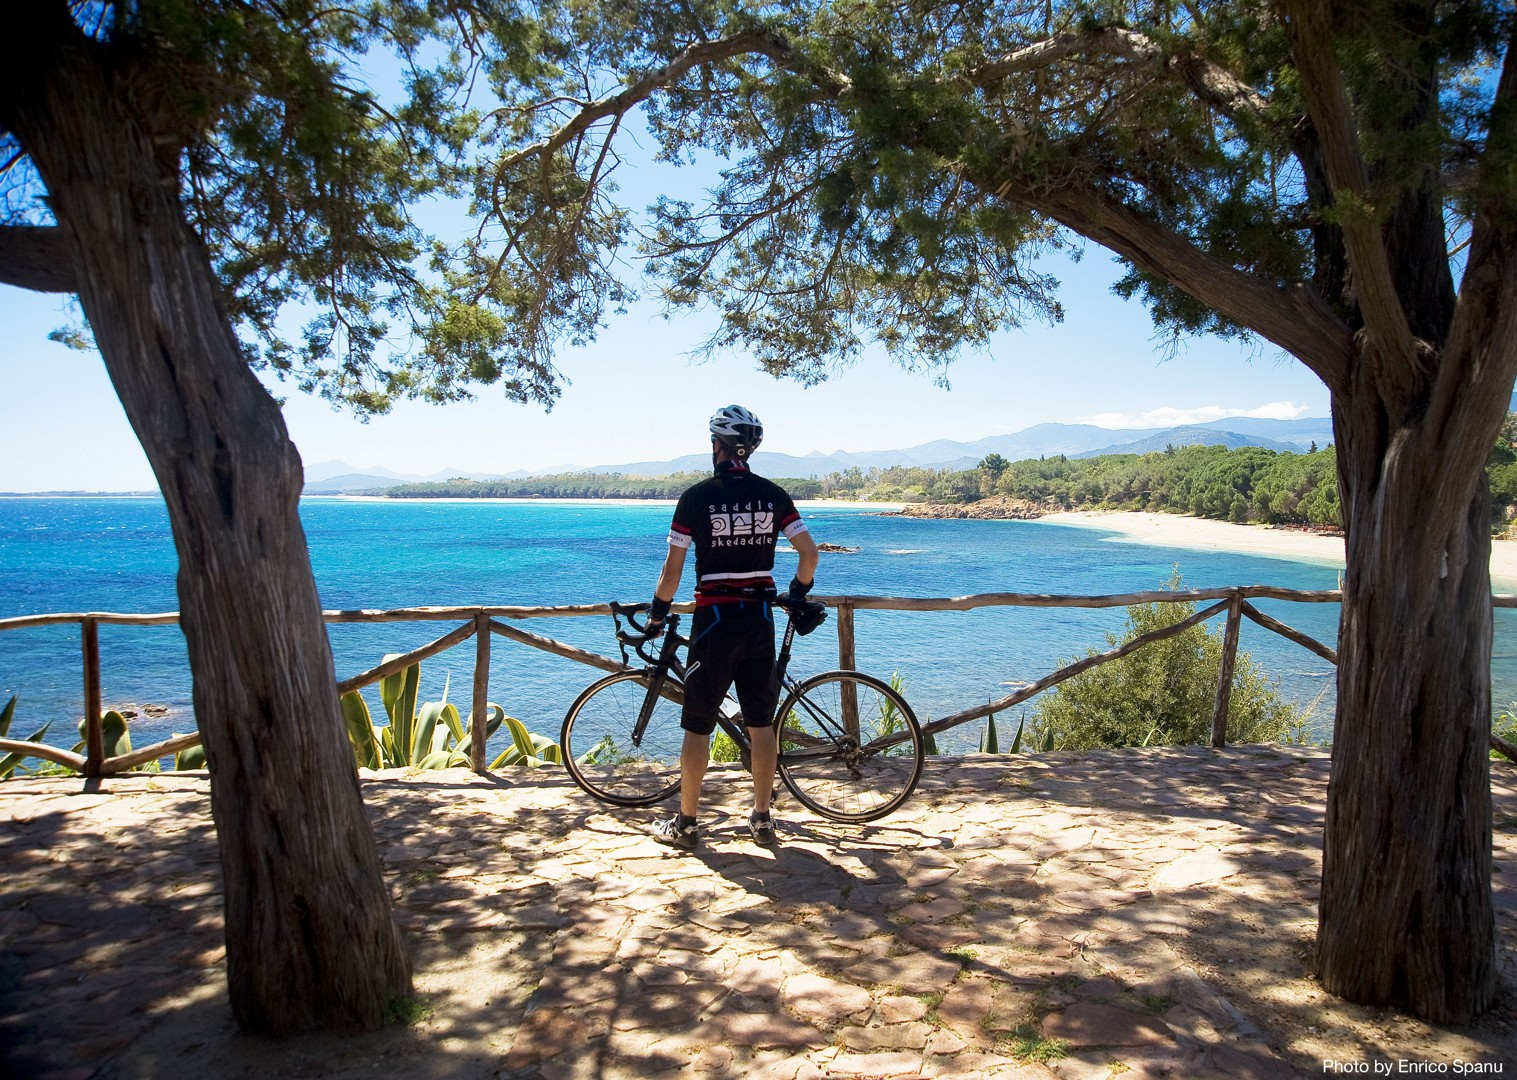 Guided-Road-Cycling-Holiday-Sardinia-Sardinian-Mountains-Forests-and-beautiful-countryside.jpg - Italy - Sardinia - Sardinian Mountains - Guided Road Cycling Holiday - Italia Road Cycling